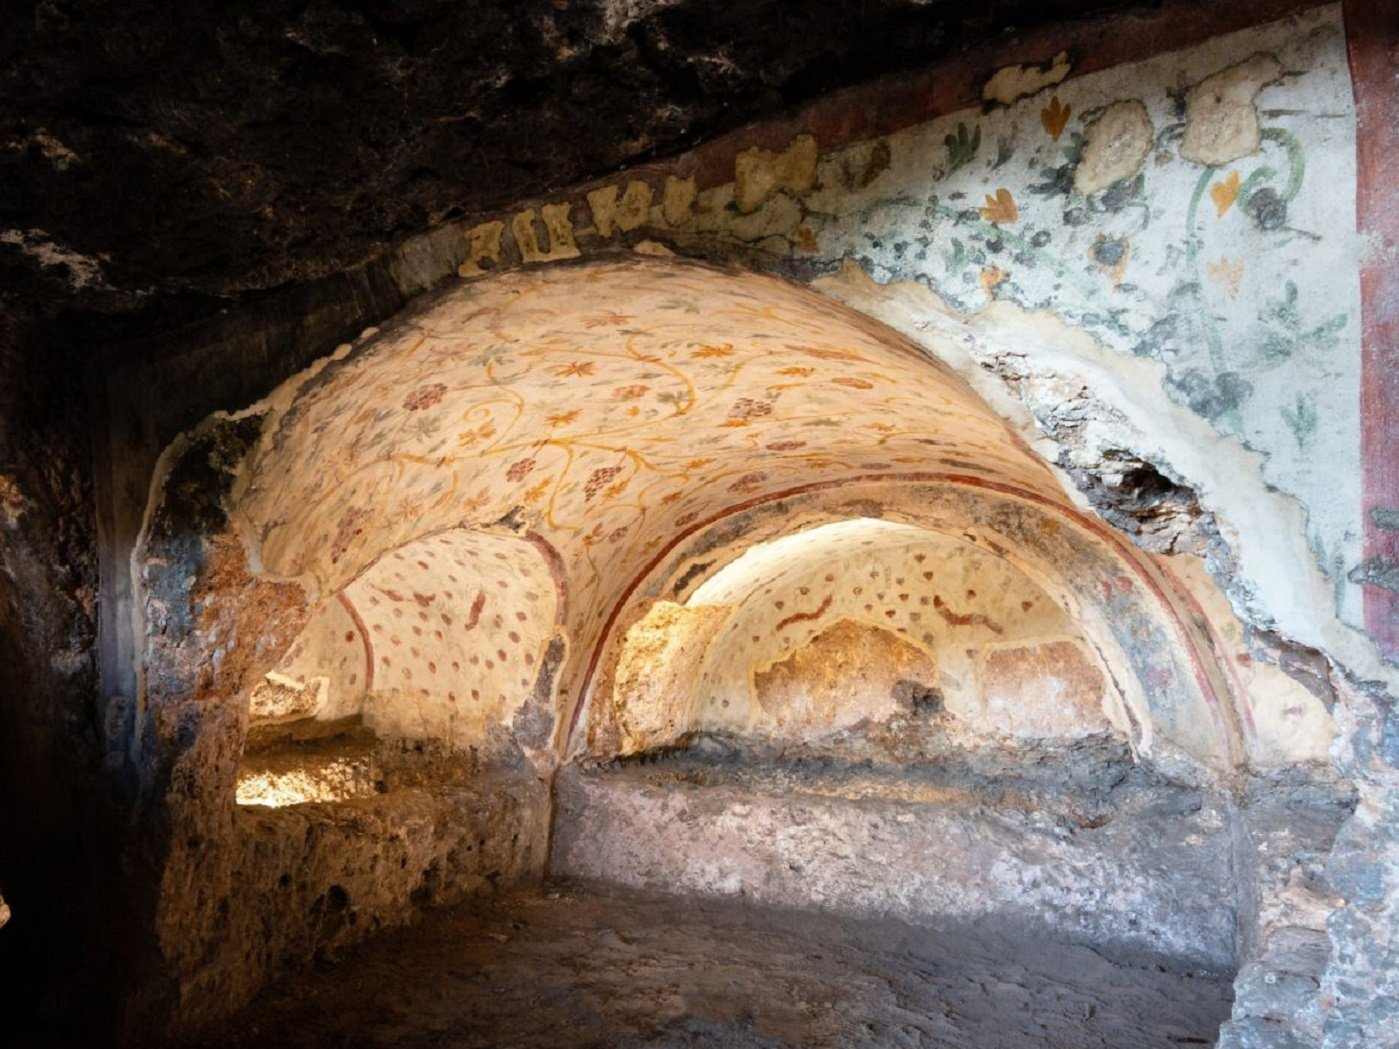 Hundreds of Ornate, Rock-Cut Tombs Discovered in Ancient Turkish City